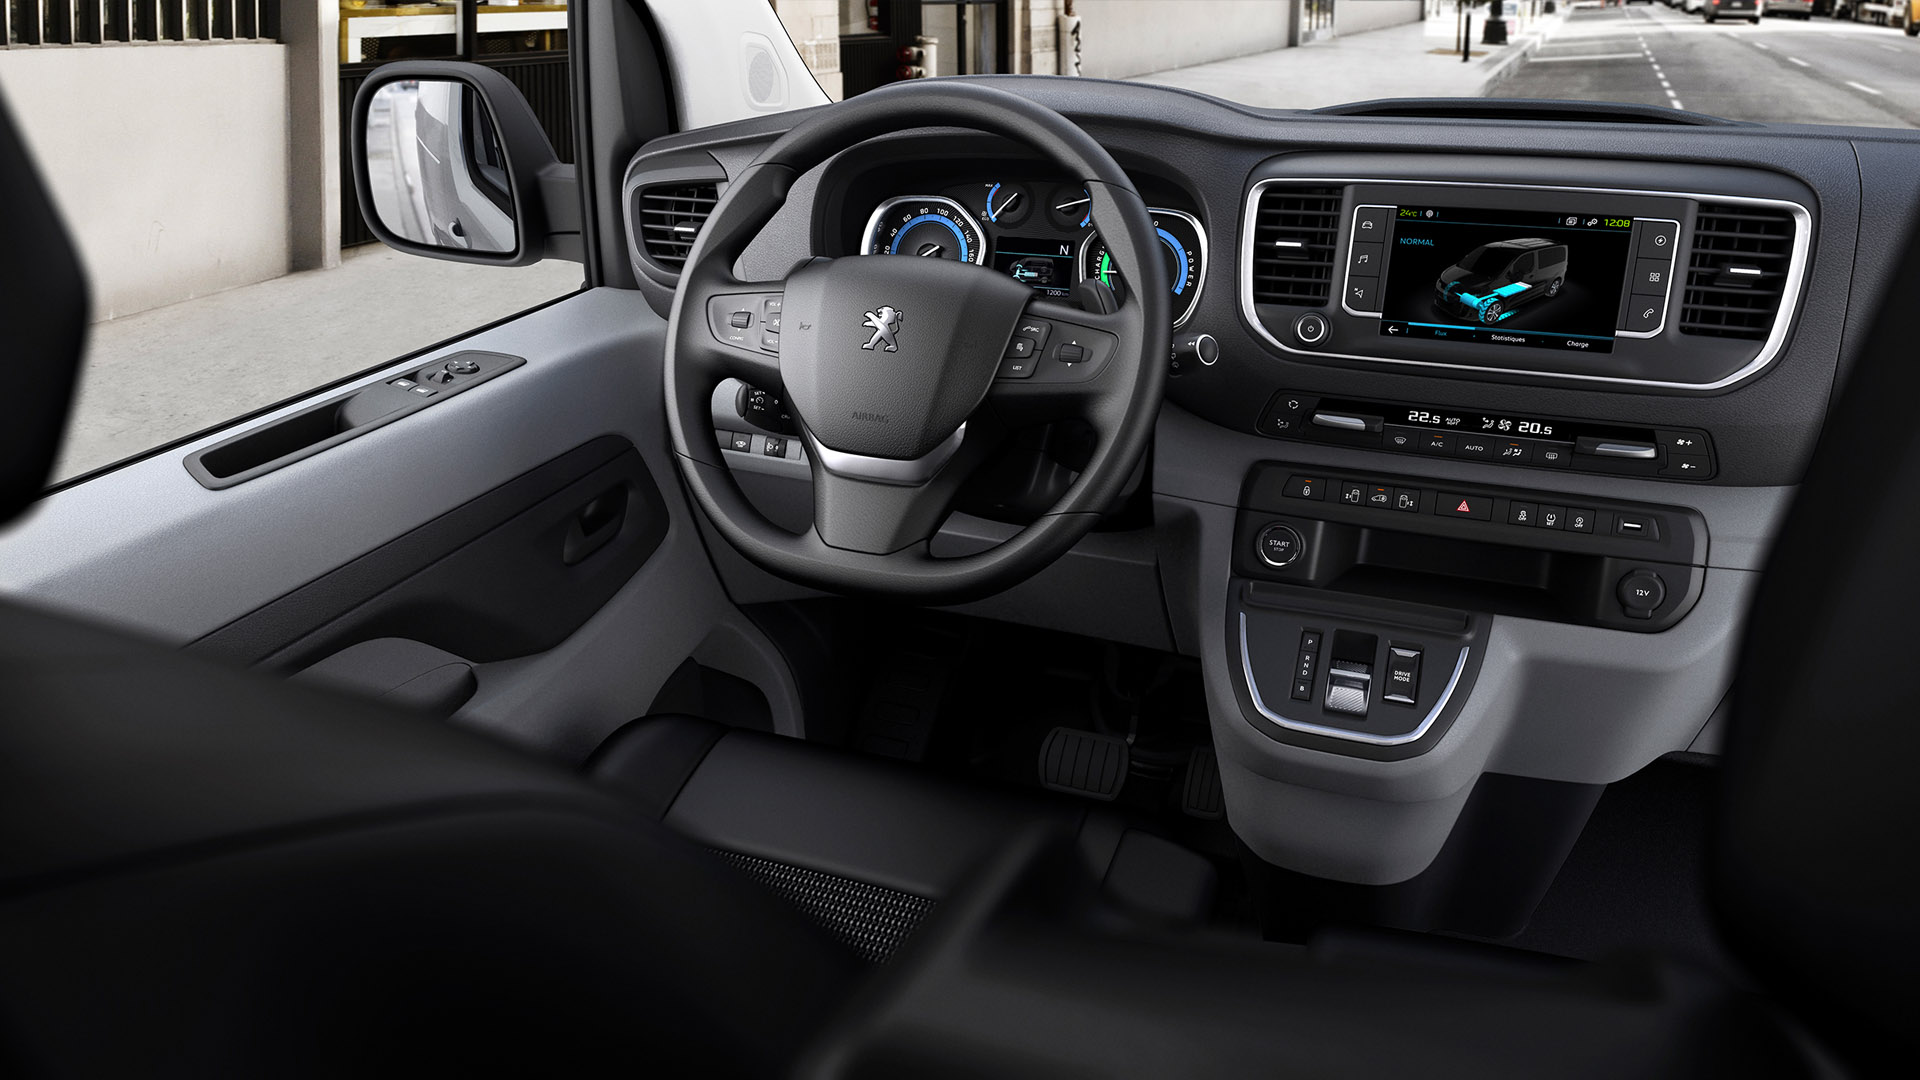 Peugeot launches its new e-Expert all-electric compact van TotallyEV